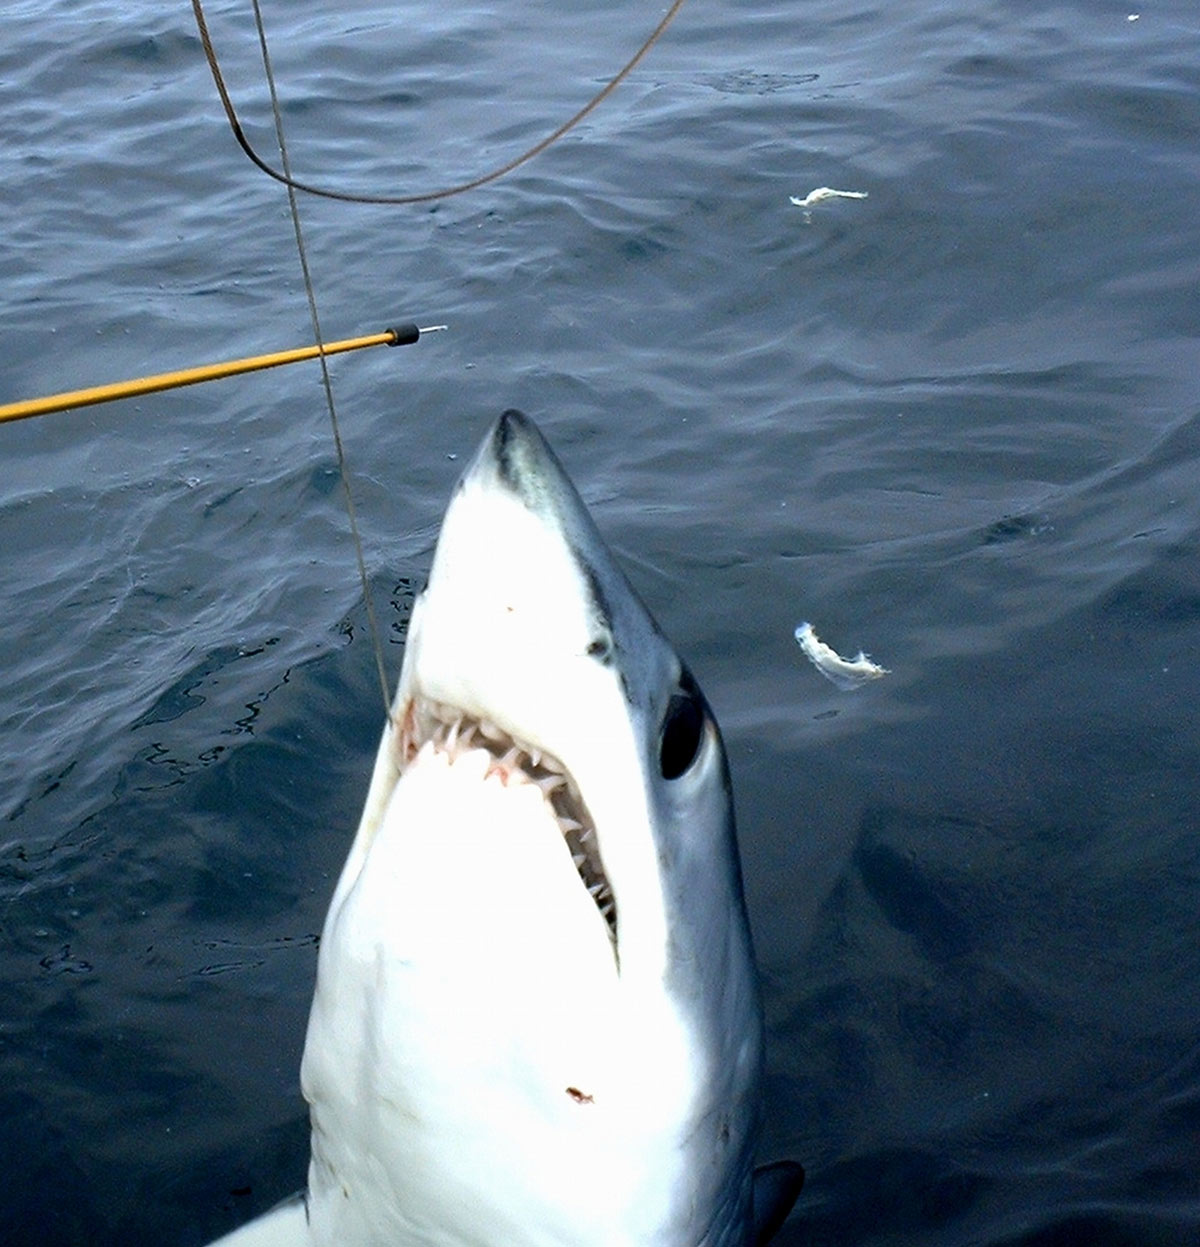 Shark with half its body above water attached to a fishing rod